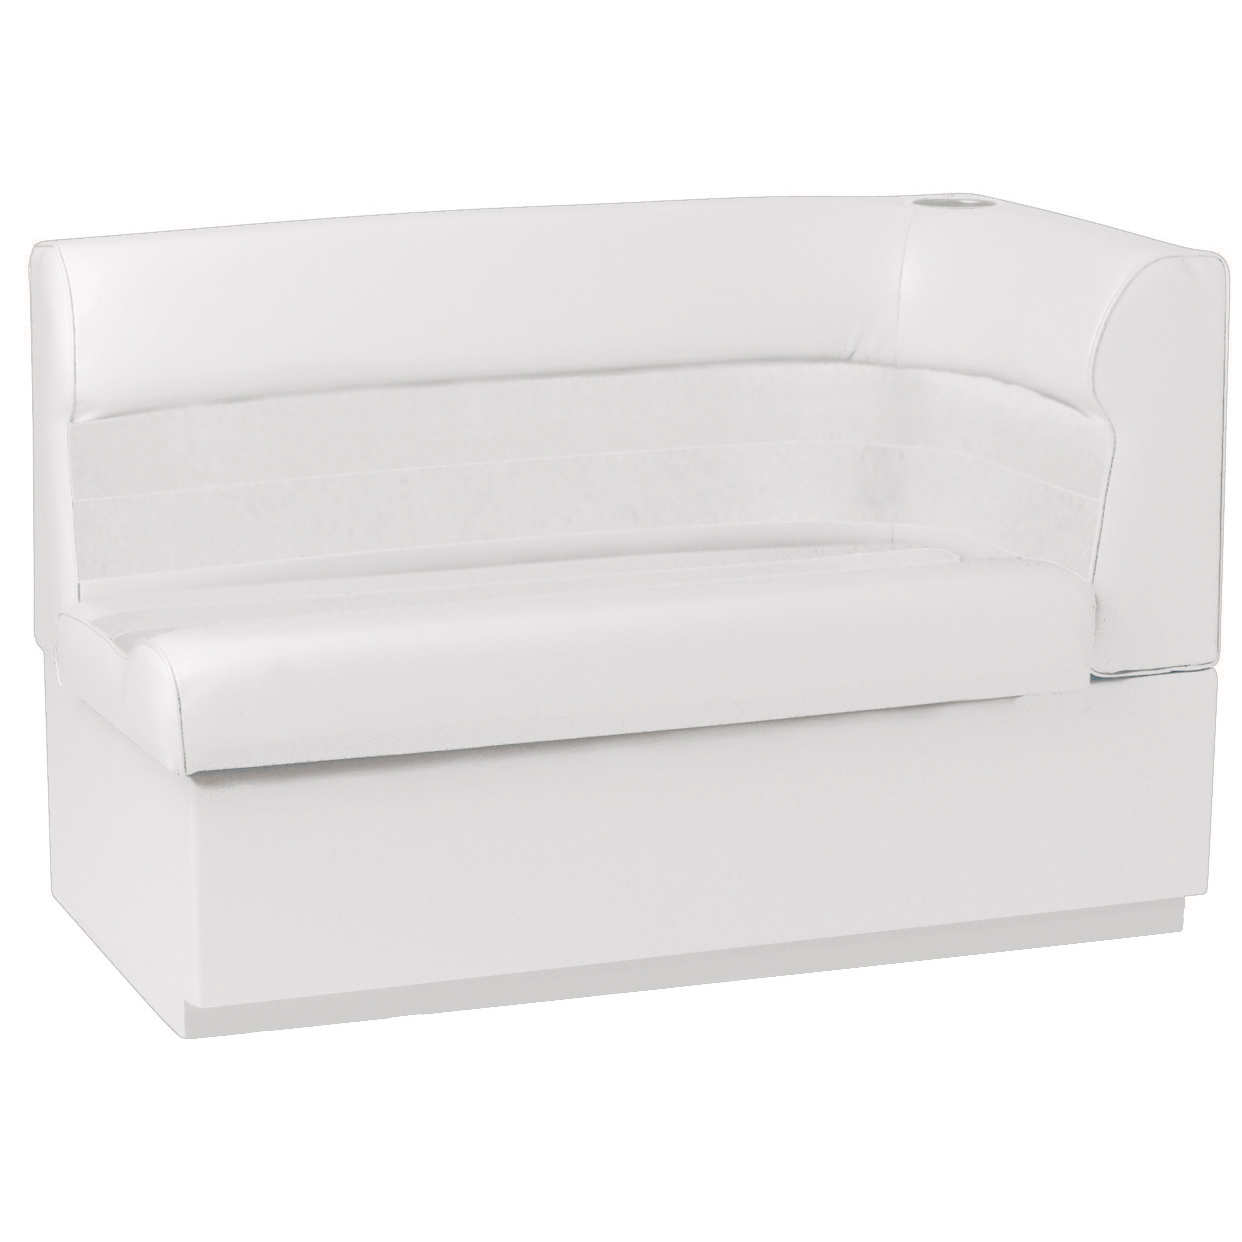 Toonmate Deluxe Pontoon Corner Couch with Toe Kick Base, Left Side, White